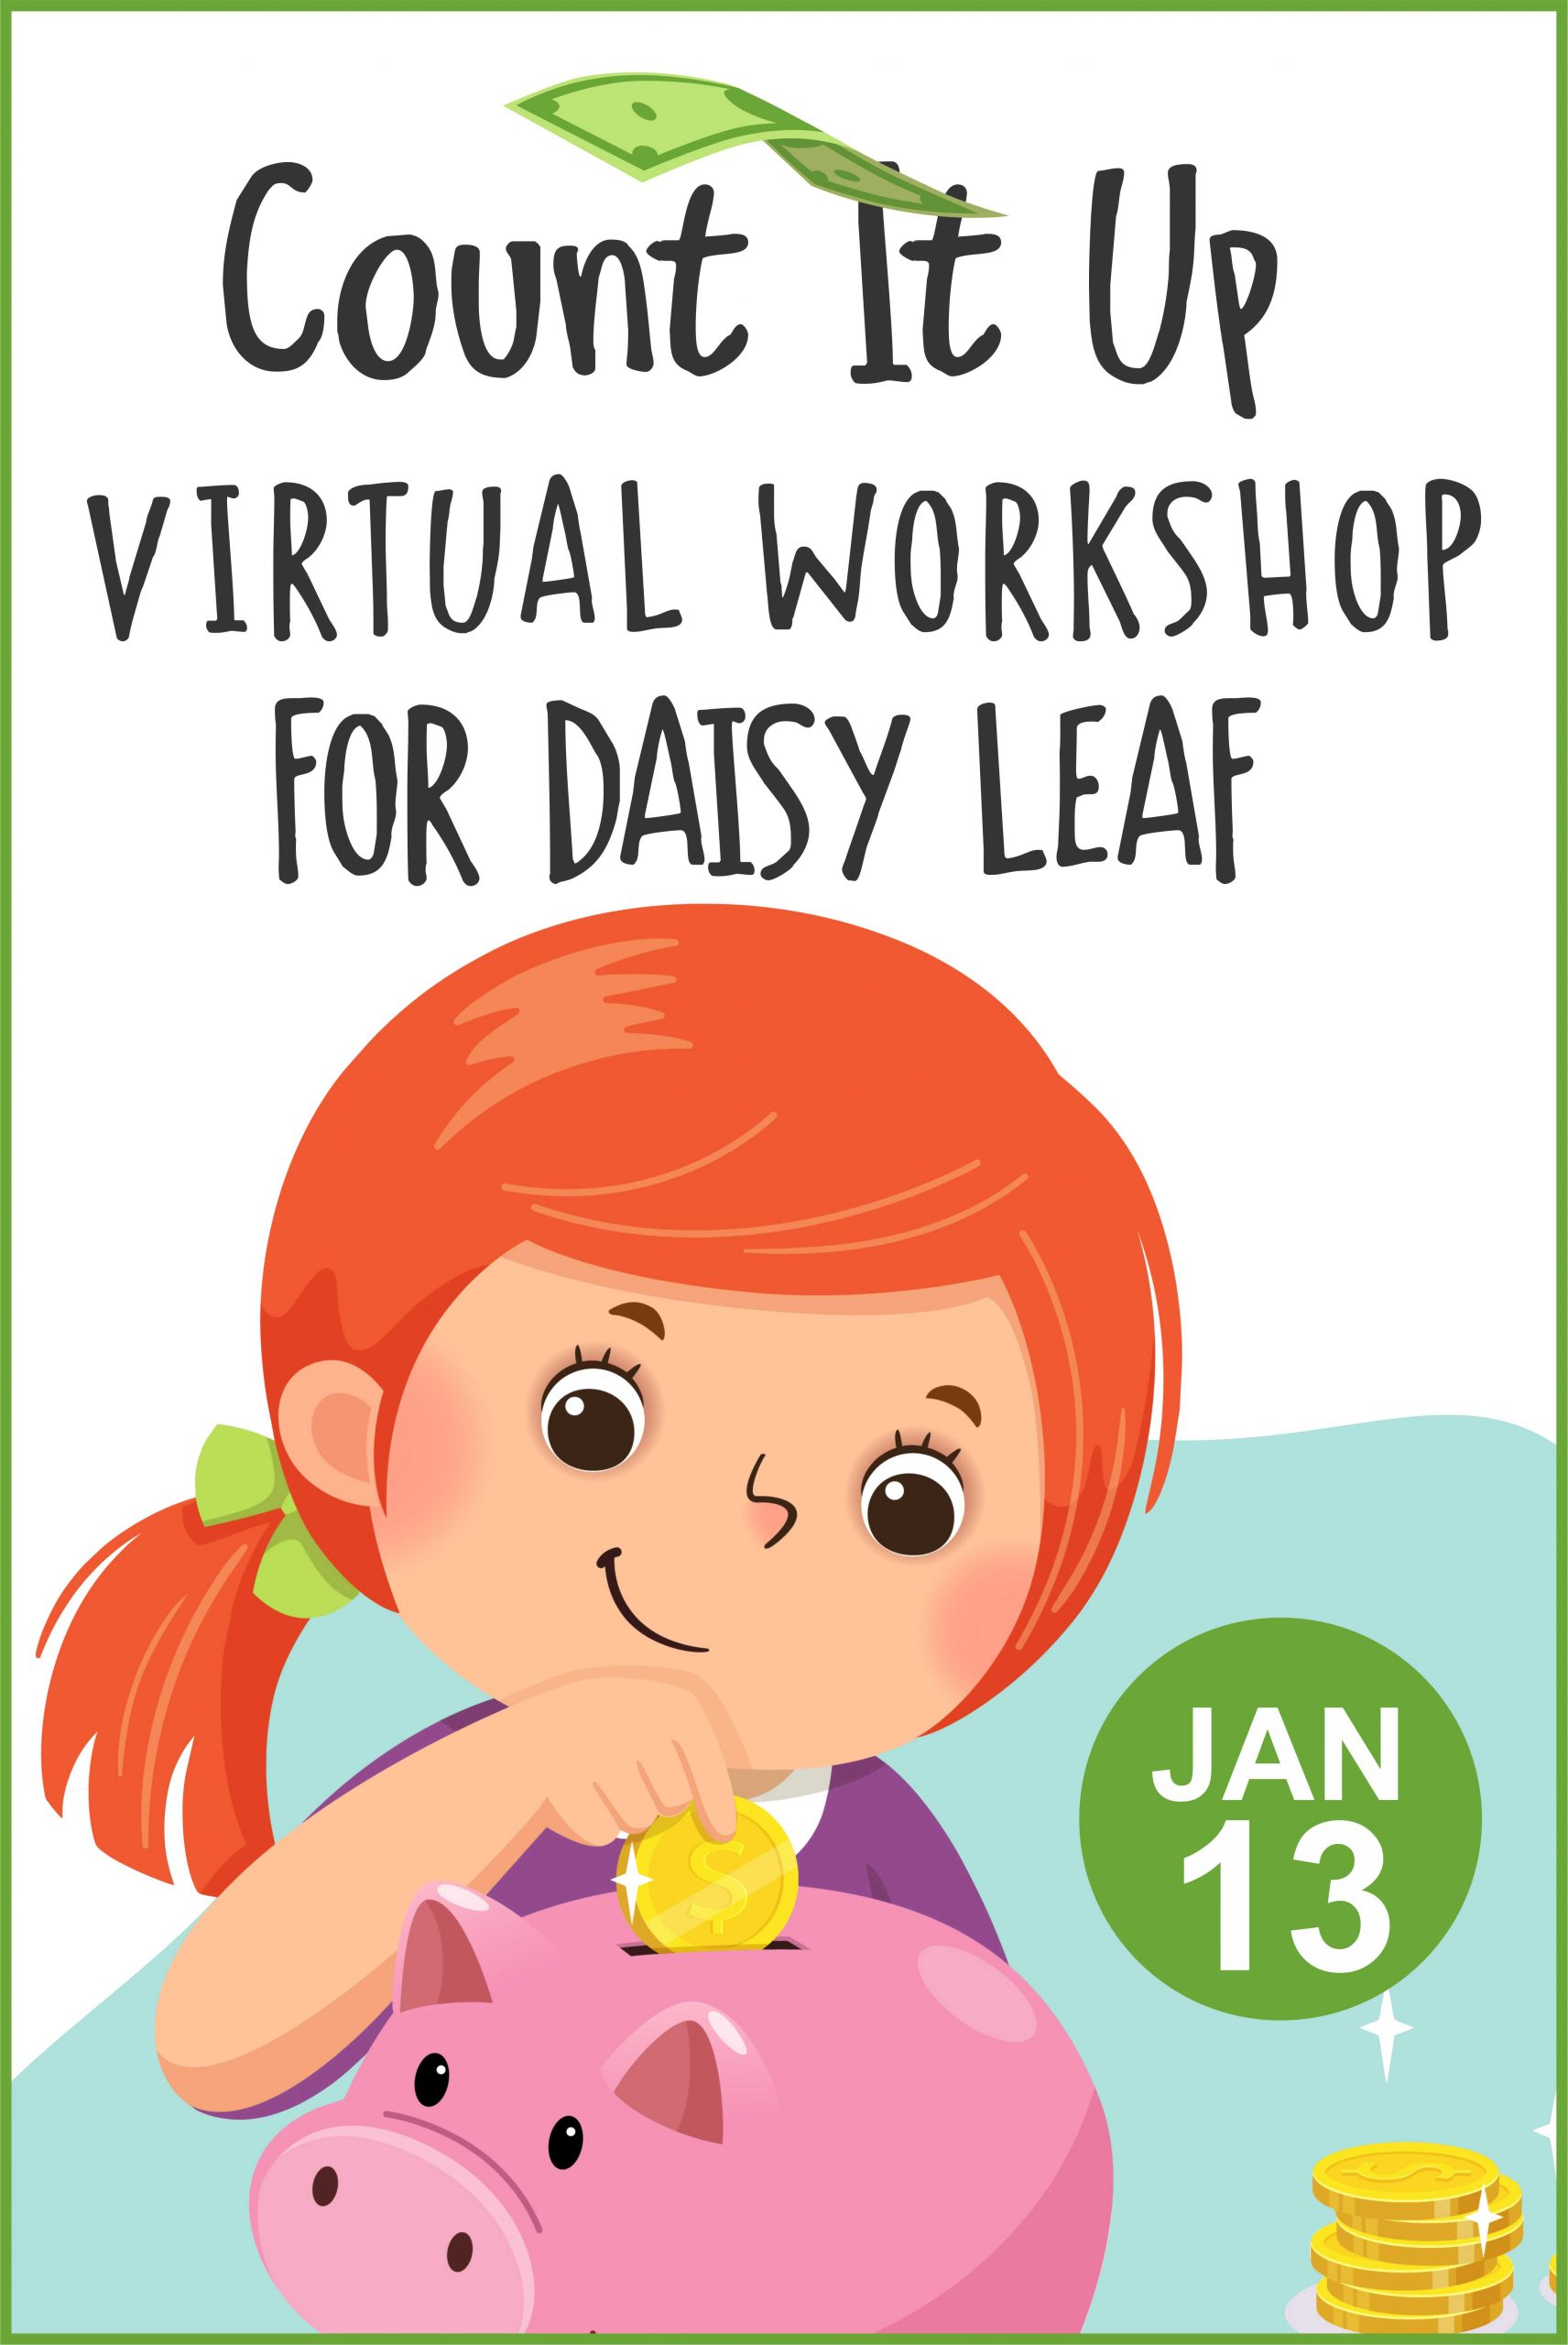 Daisies get ready to sell cookies with our virtual Count it Up workshop! #makingfriends #virtualclass #gsdaisies #virtualworkshop #onlineworkshop #daisy #girlscouts #gsonline #gscookies #cookieseason via @gsleader411